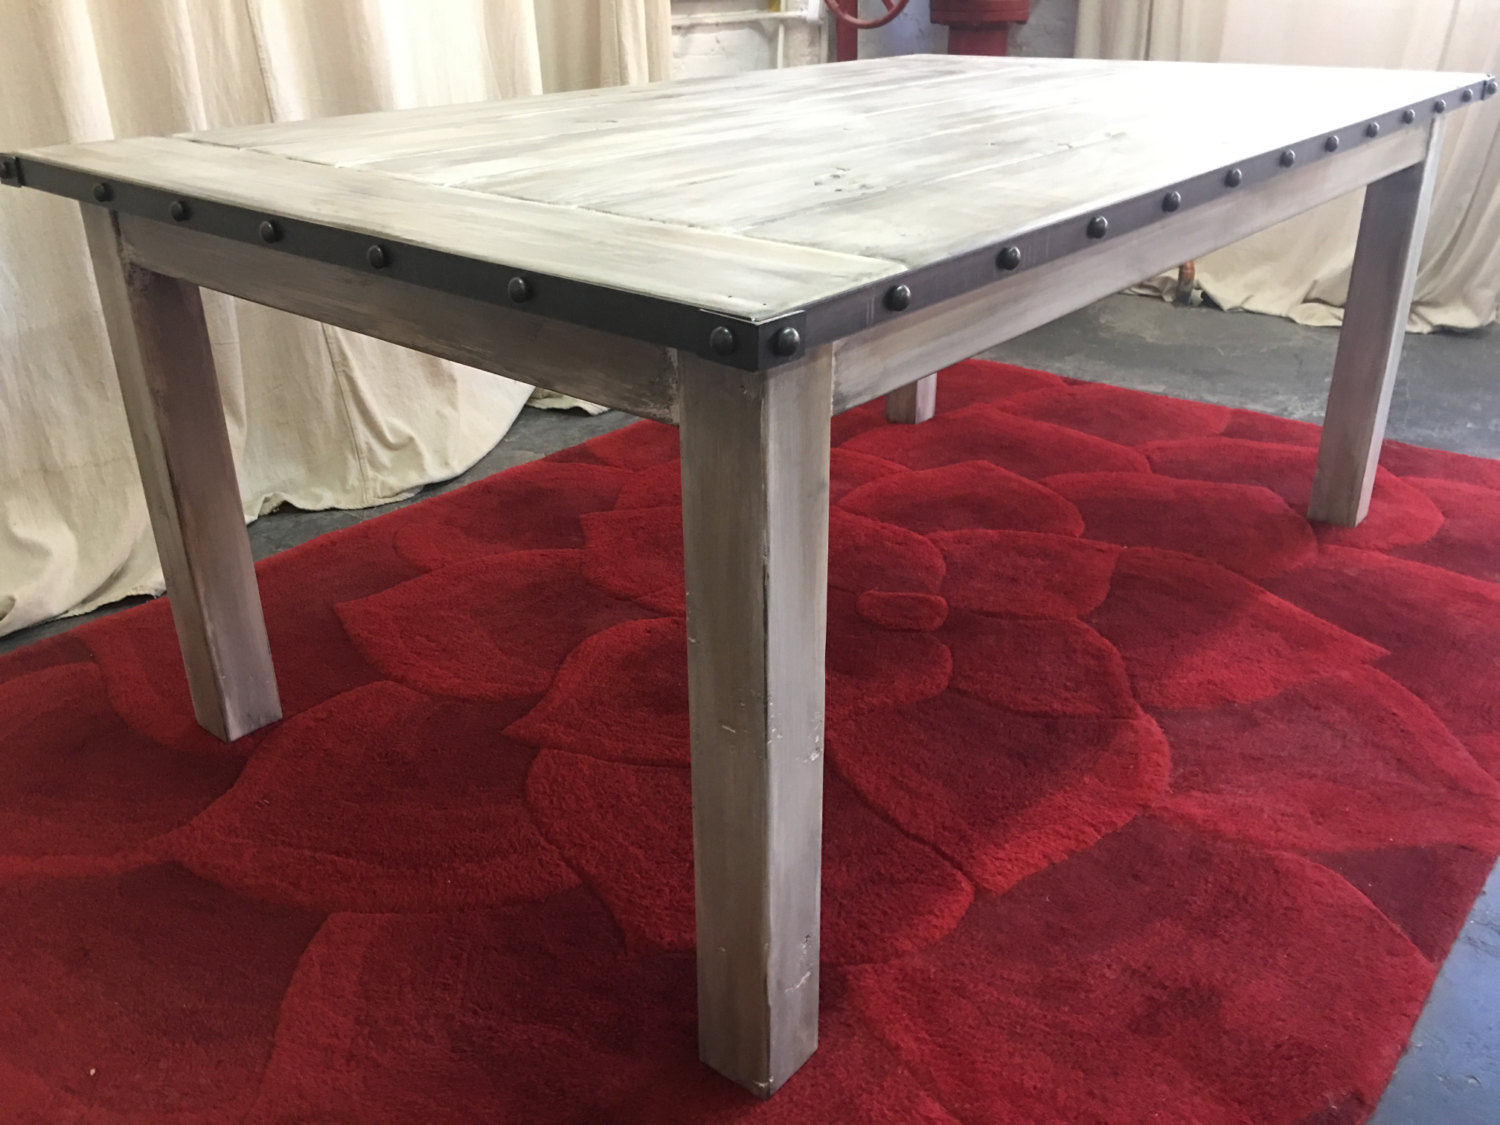 ... Dining Table, Farmhouse Table, Metal Banding, Reclaimed Wood Table,  Kitchen Table,